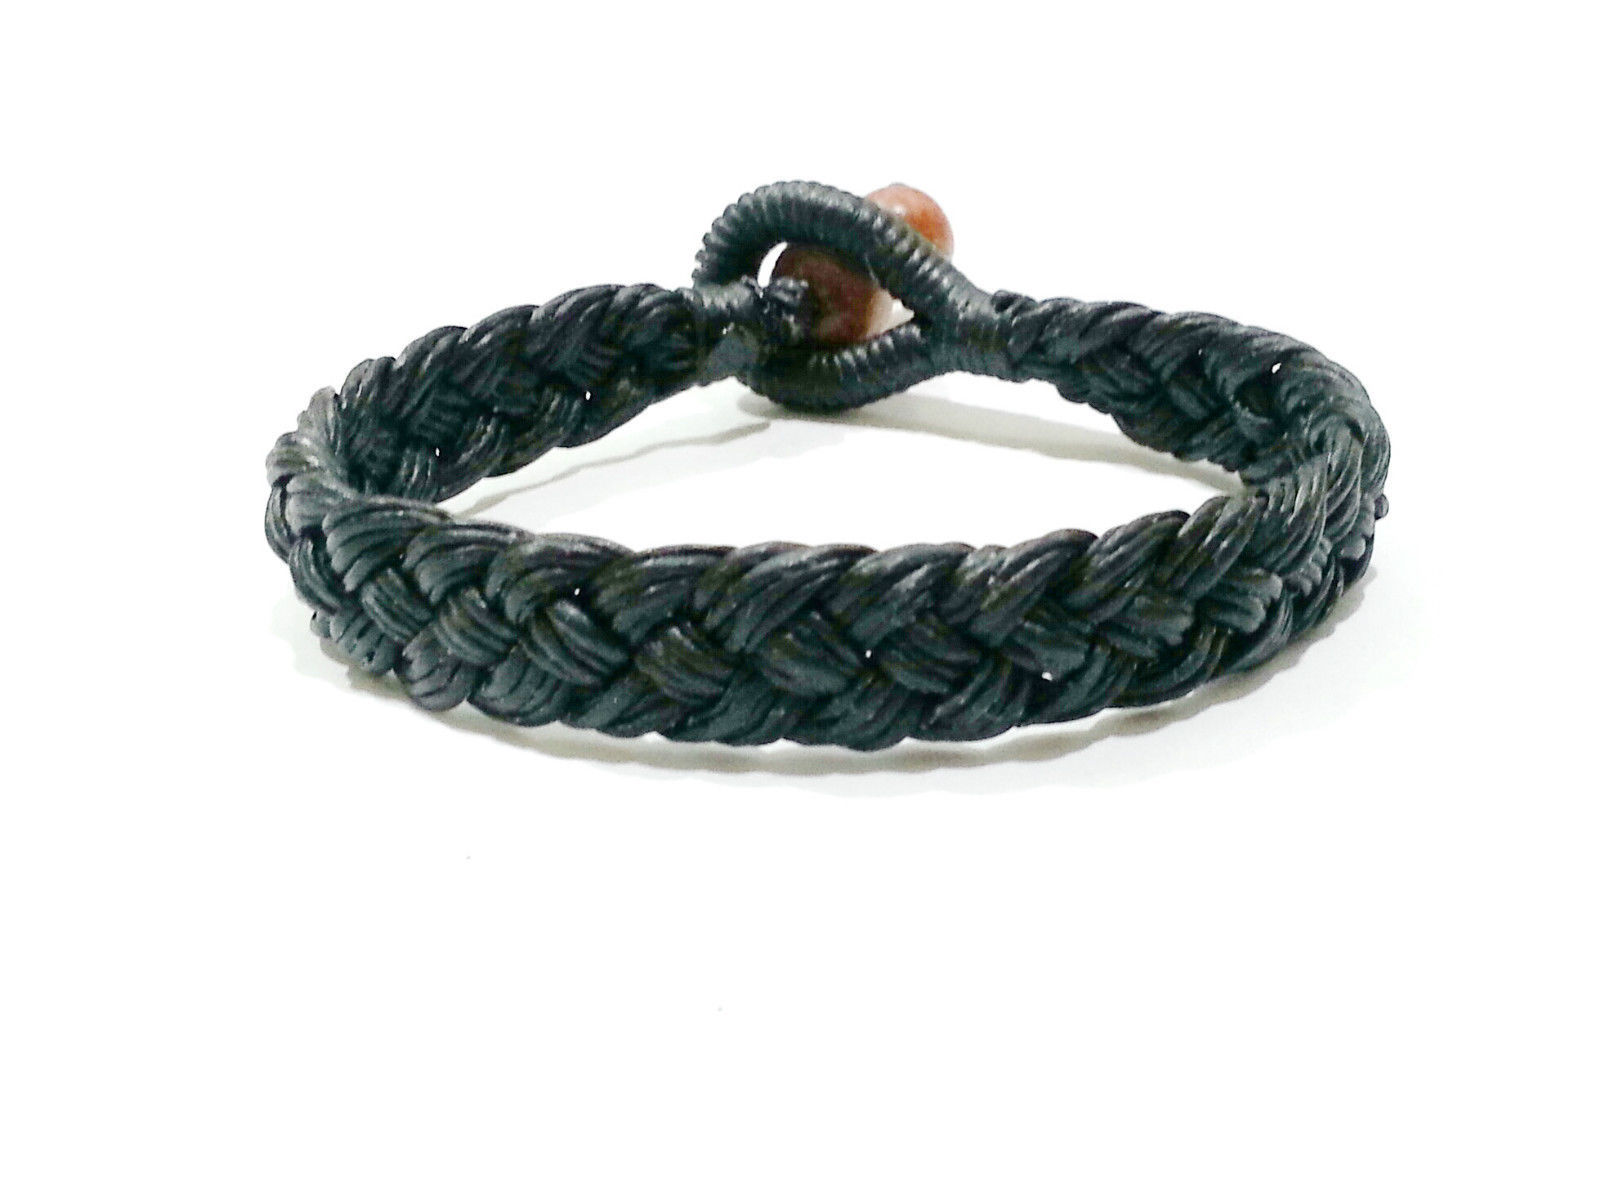 Fair Trade Wide Black Wax Cord Classic Thai Wristband Handcrafted Bracelet